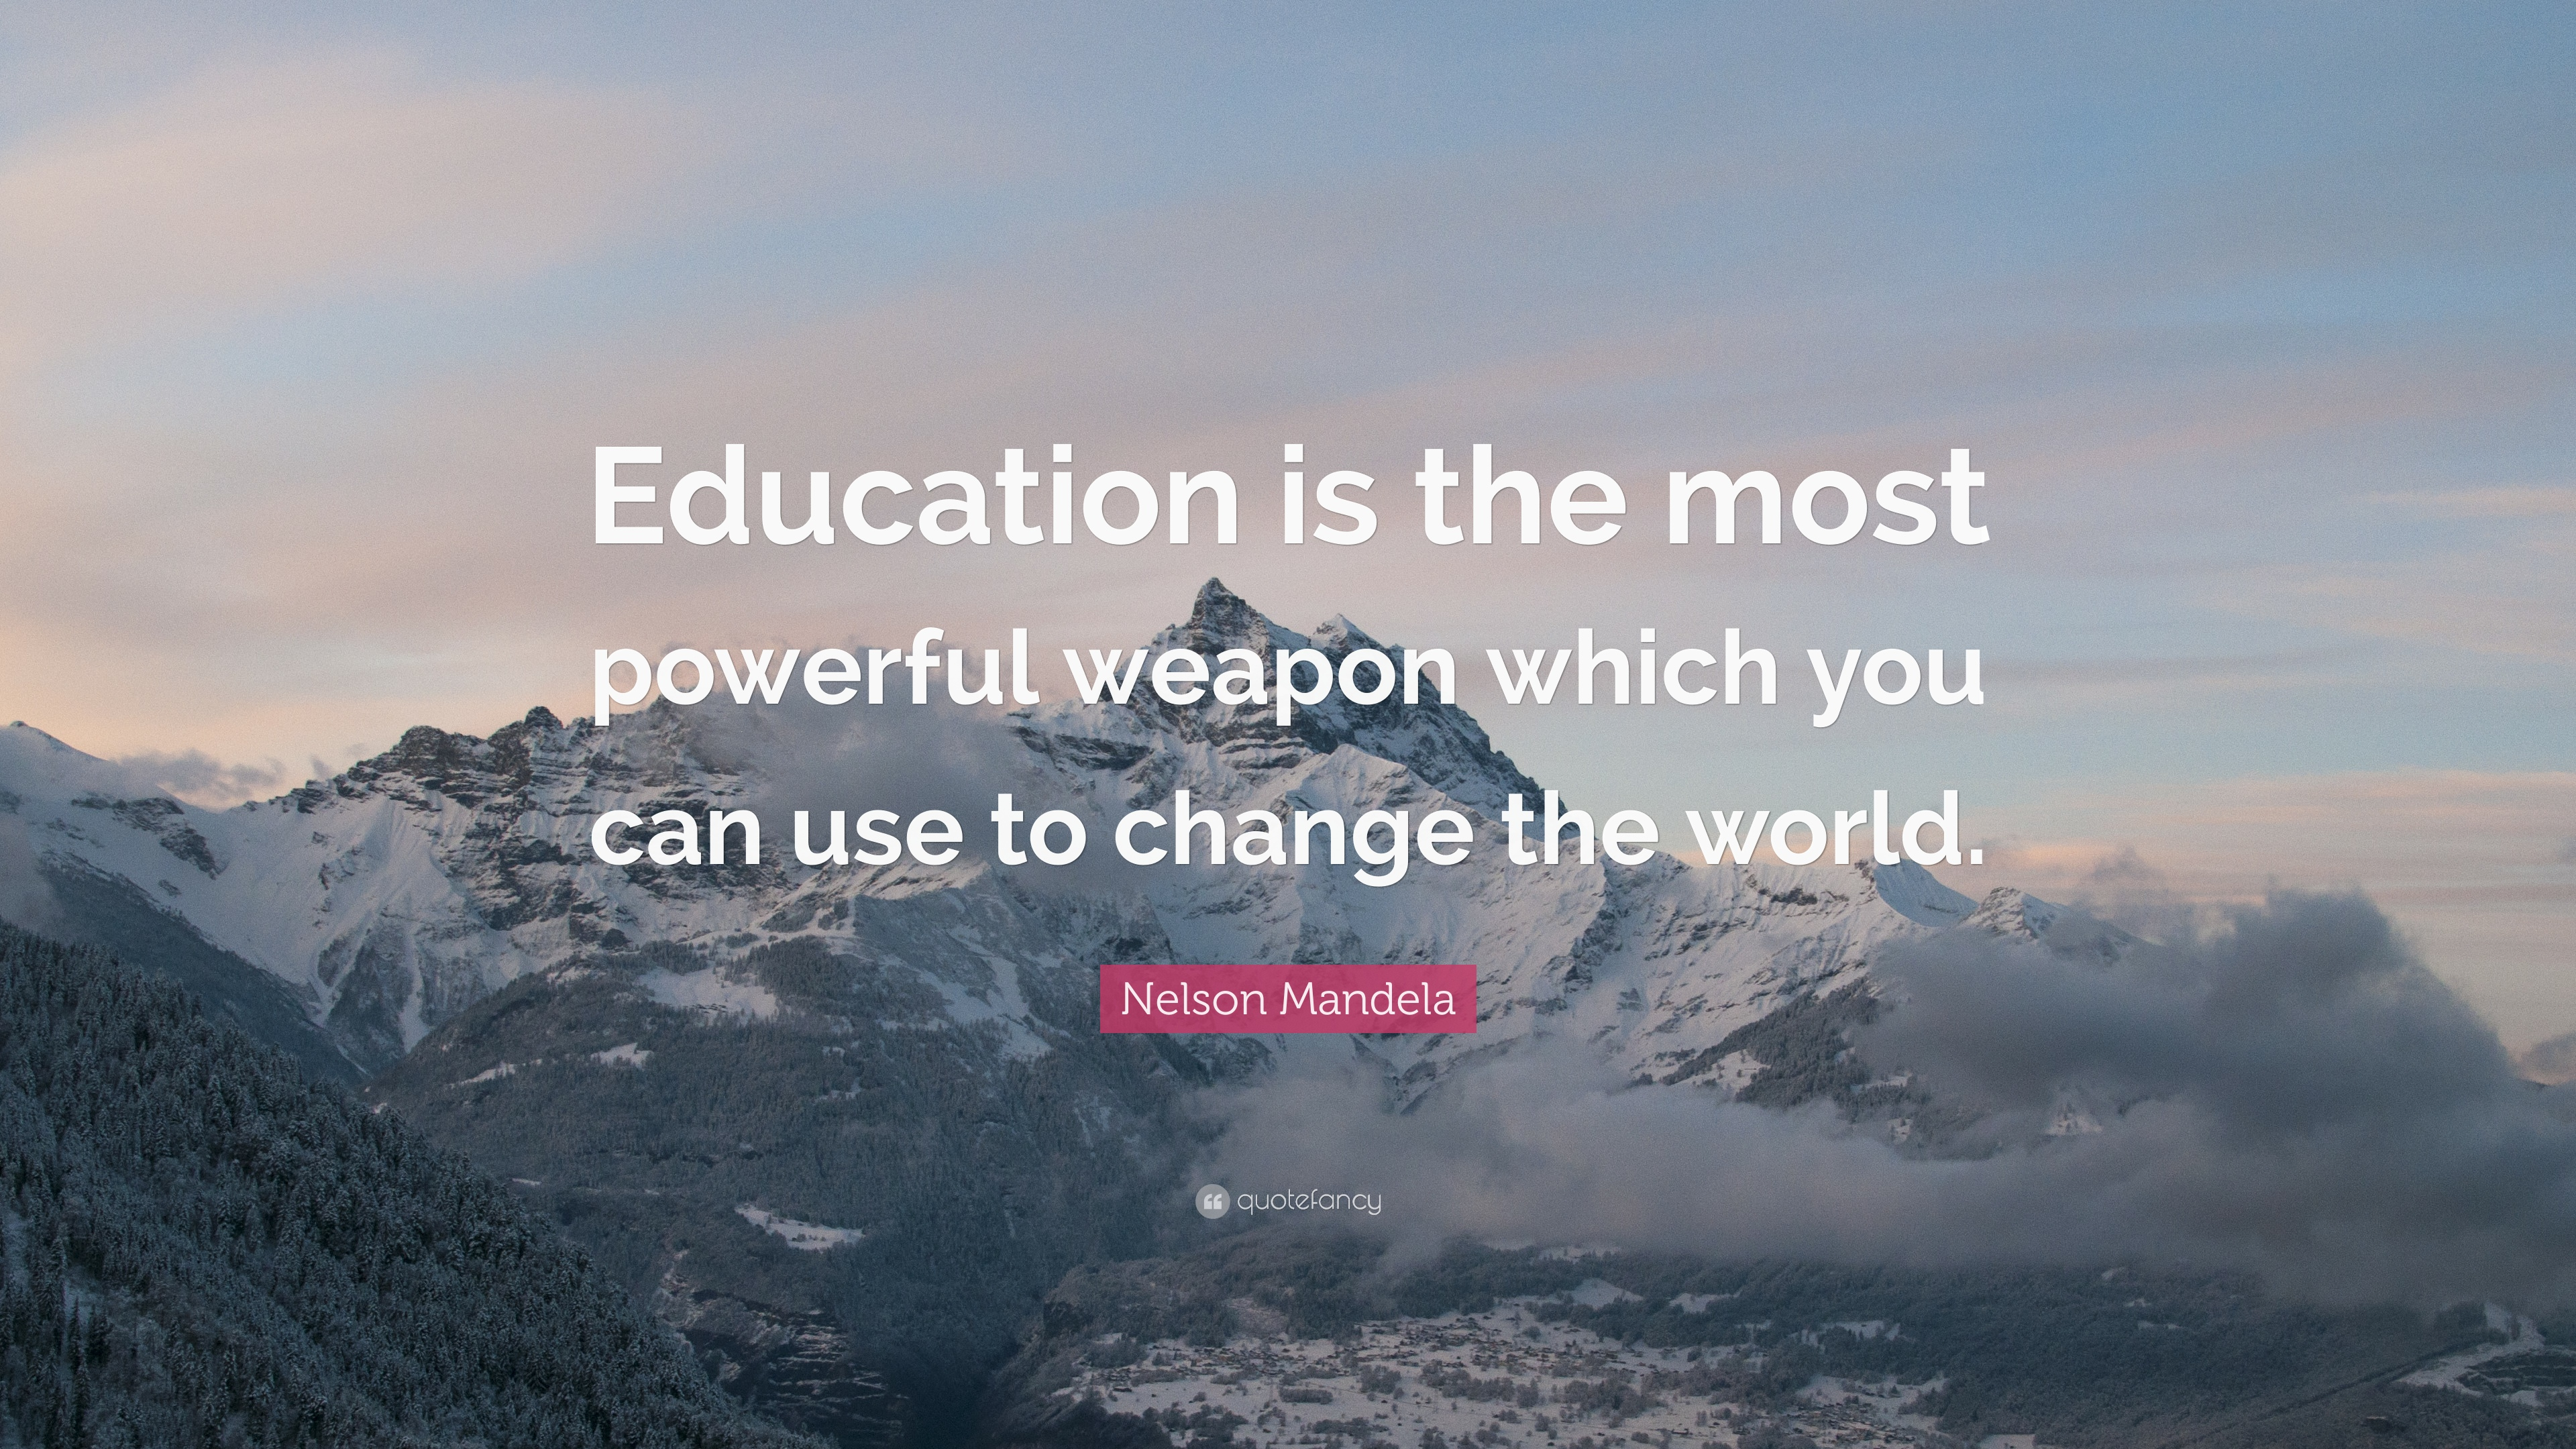 "education is the most powerful weapon used to change the world ""education is the most powerful weapon which you can use to change the world"" this is a quote by nelson mandela, former president of south africa and."